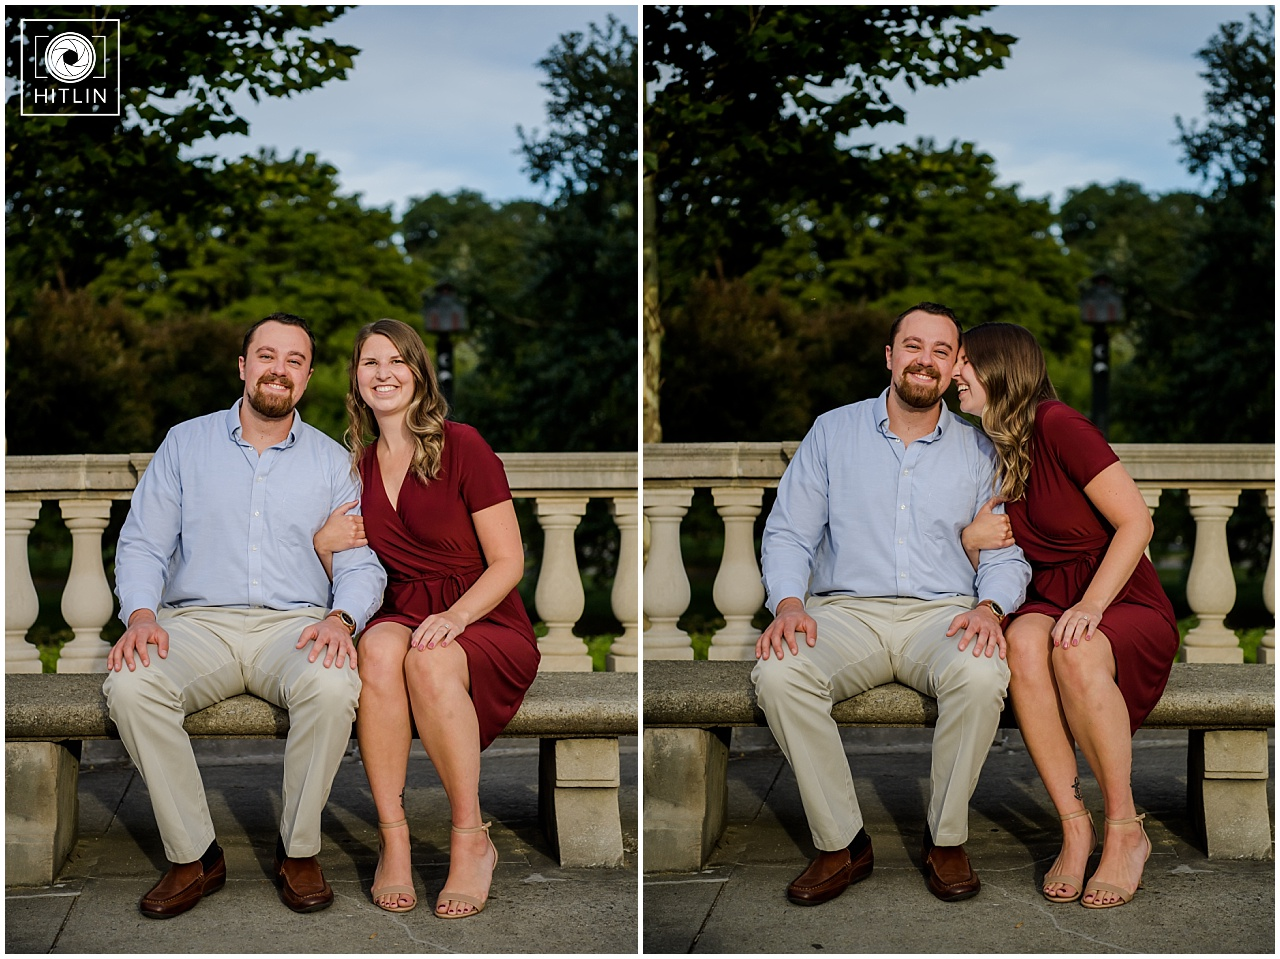 Heather & Andrew's Engagement Session